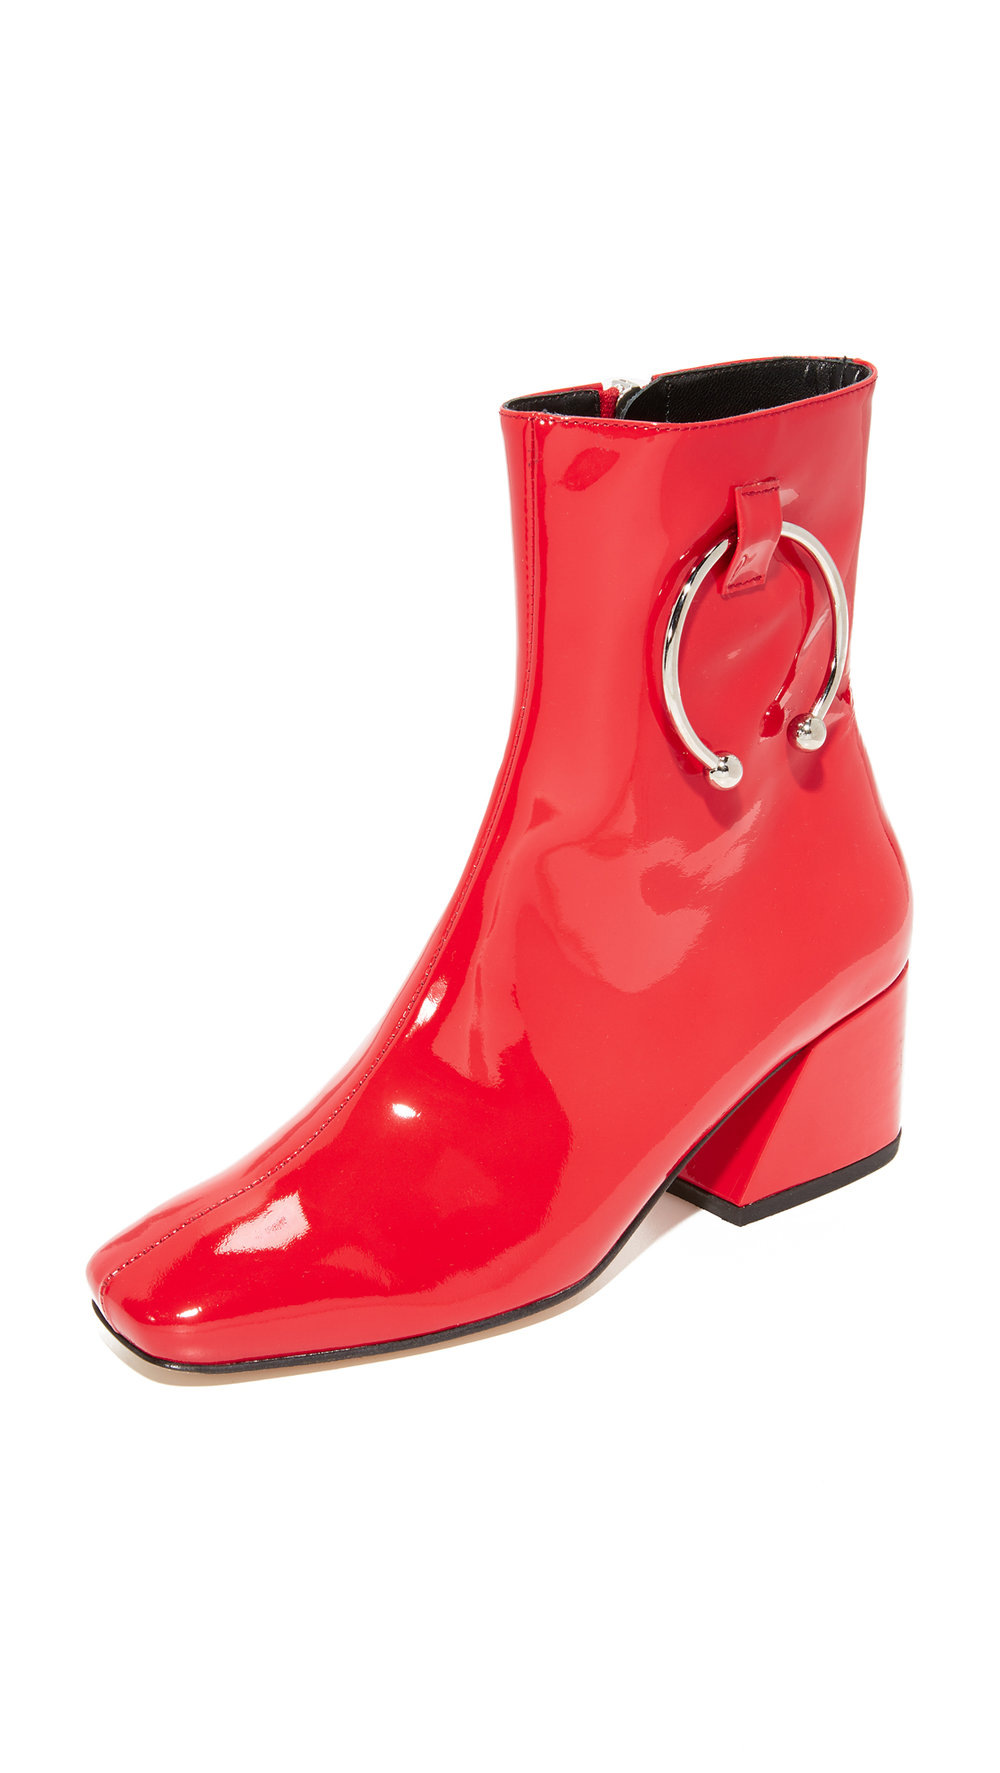 red patent leather booties